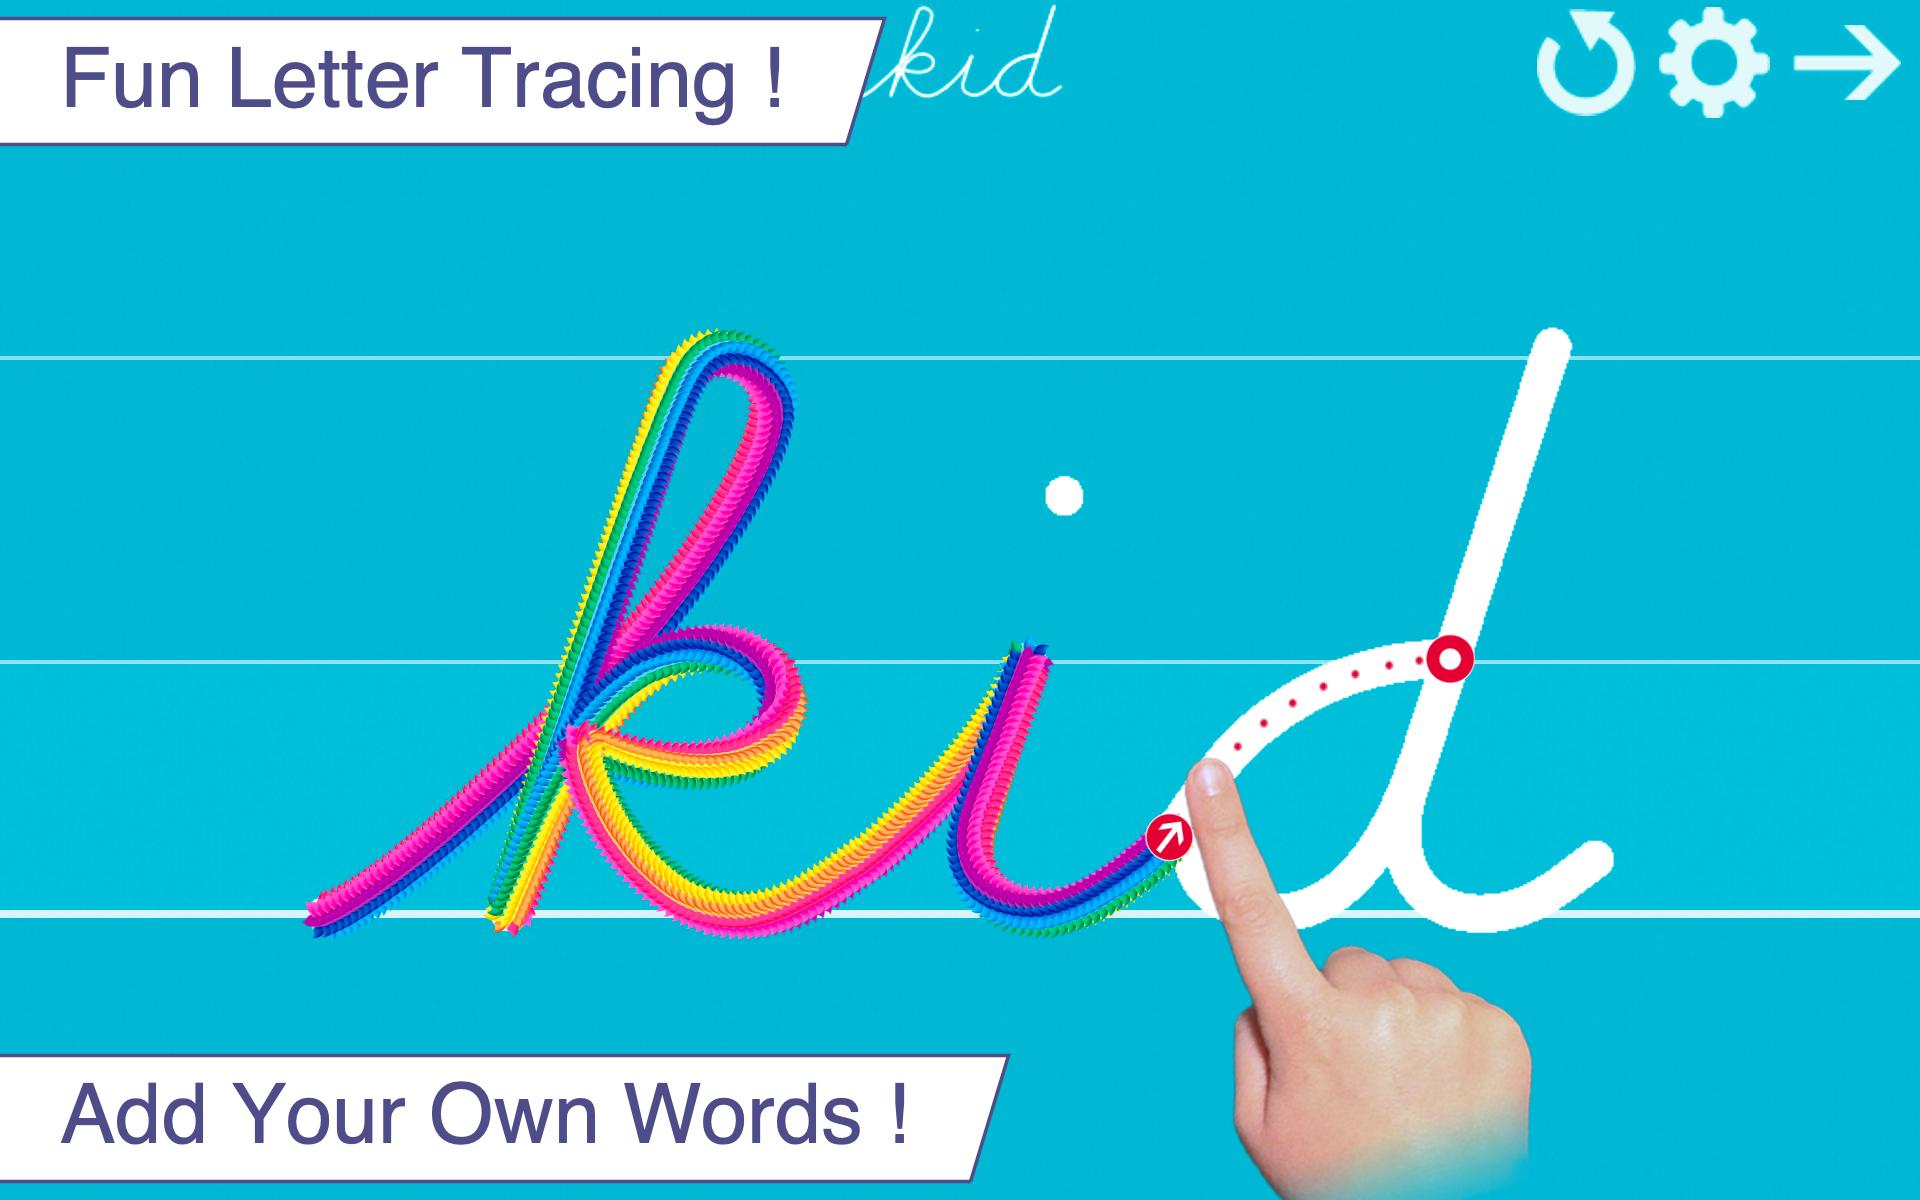 Cursive Writing Wizard For Android - Apk Download with regard to Name Tracing App Cursive